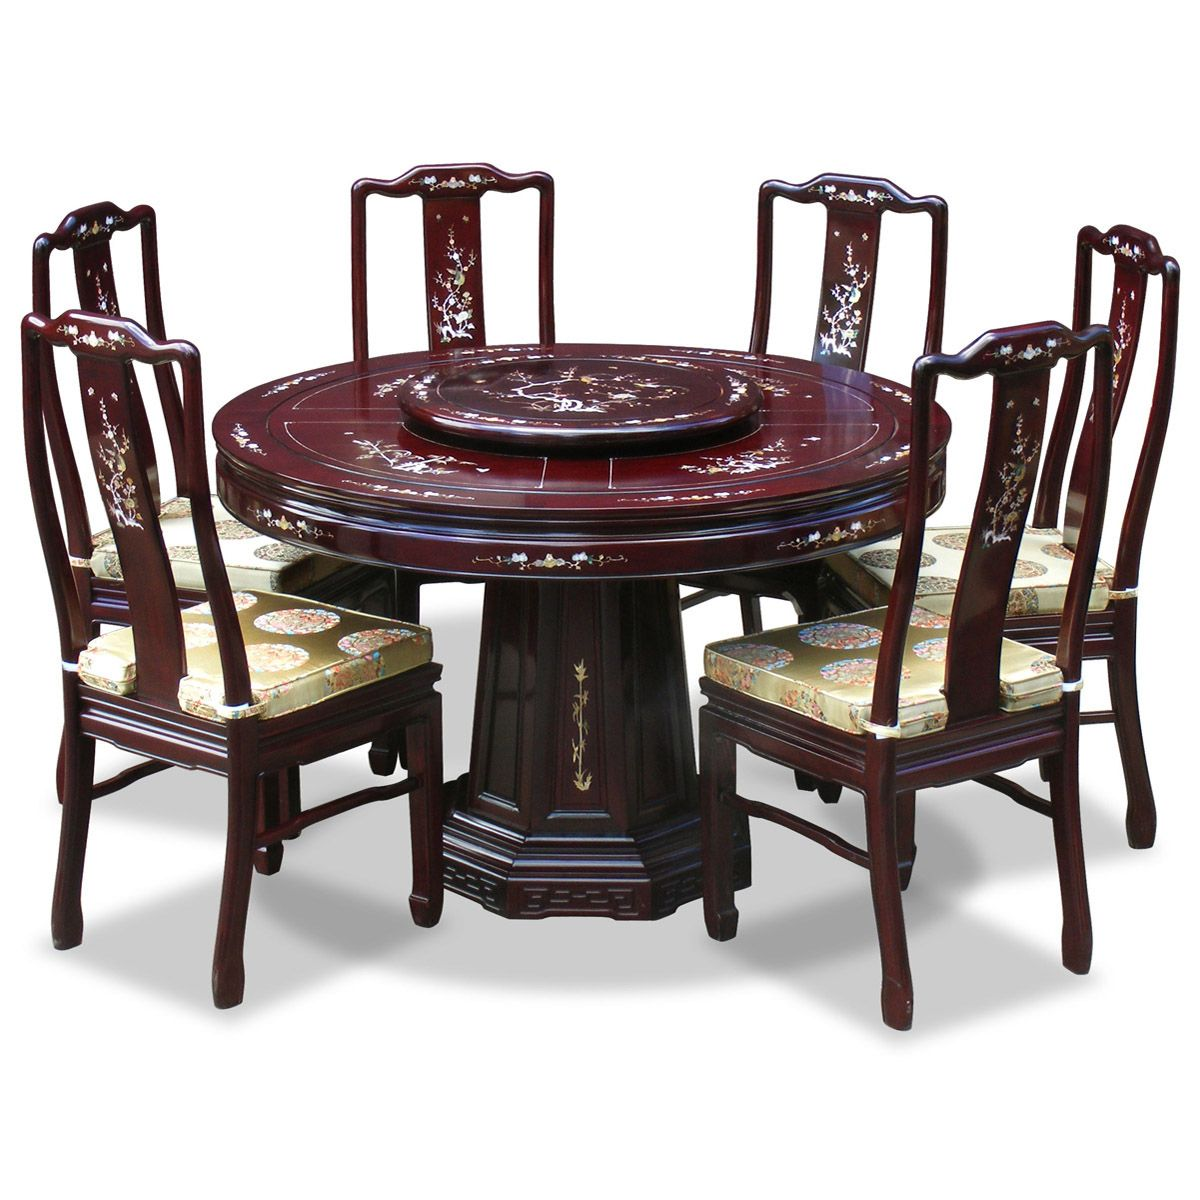 chinese rosewood dining table and chairs striped wingback chair 48in mother of pearl design round